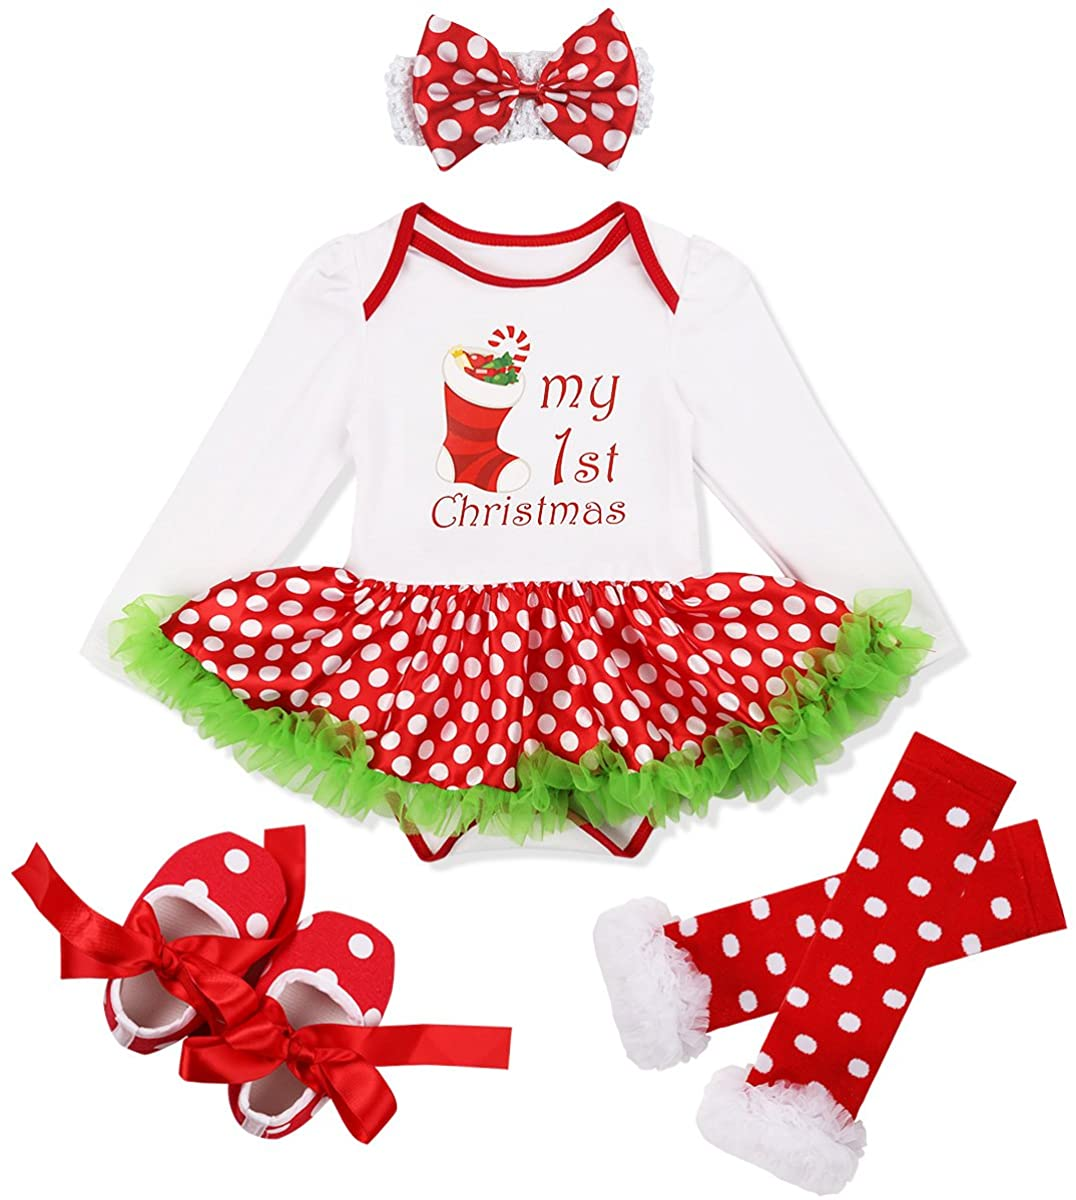 ACSUSS Baby Girls Christmas Outfits Santa Tree/Stocking Long Sleeves Romper with Headband Leg Warmer Shoes Set